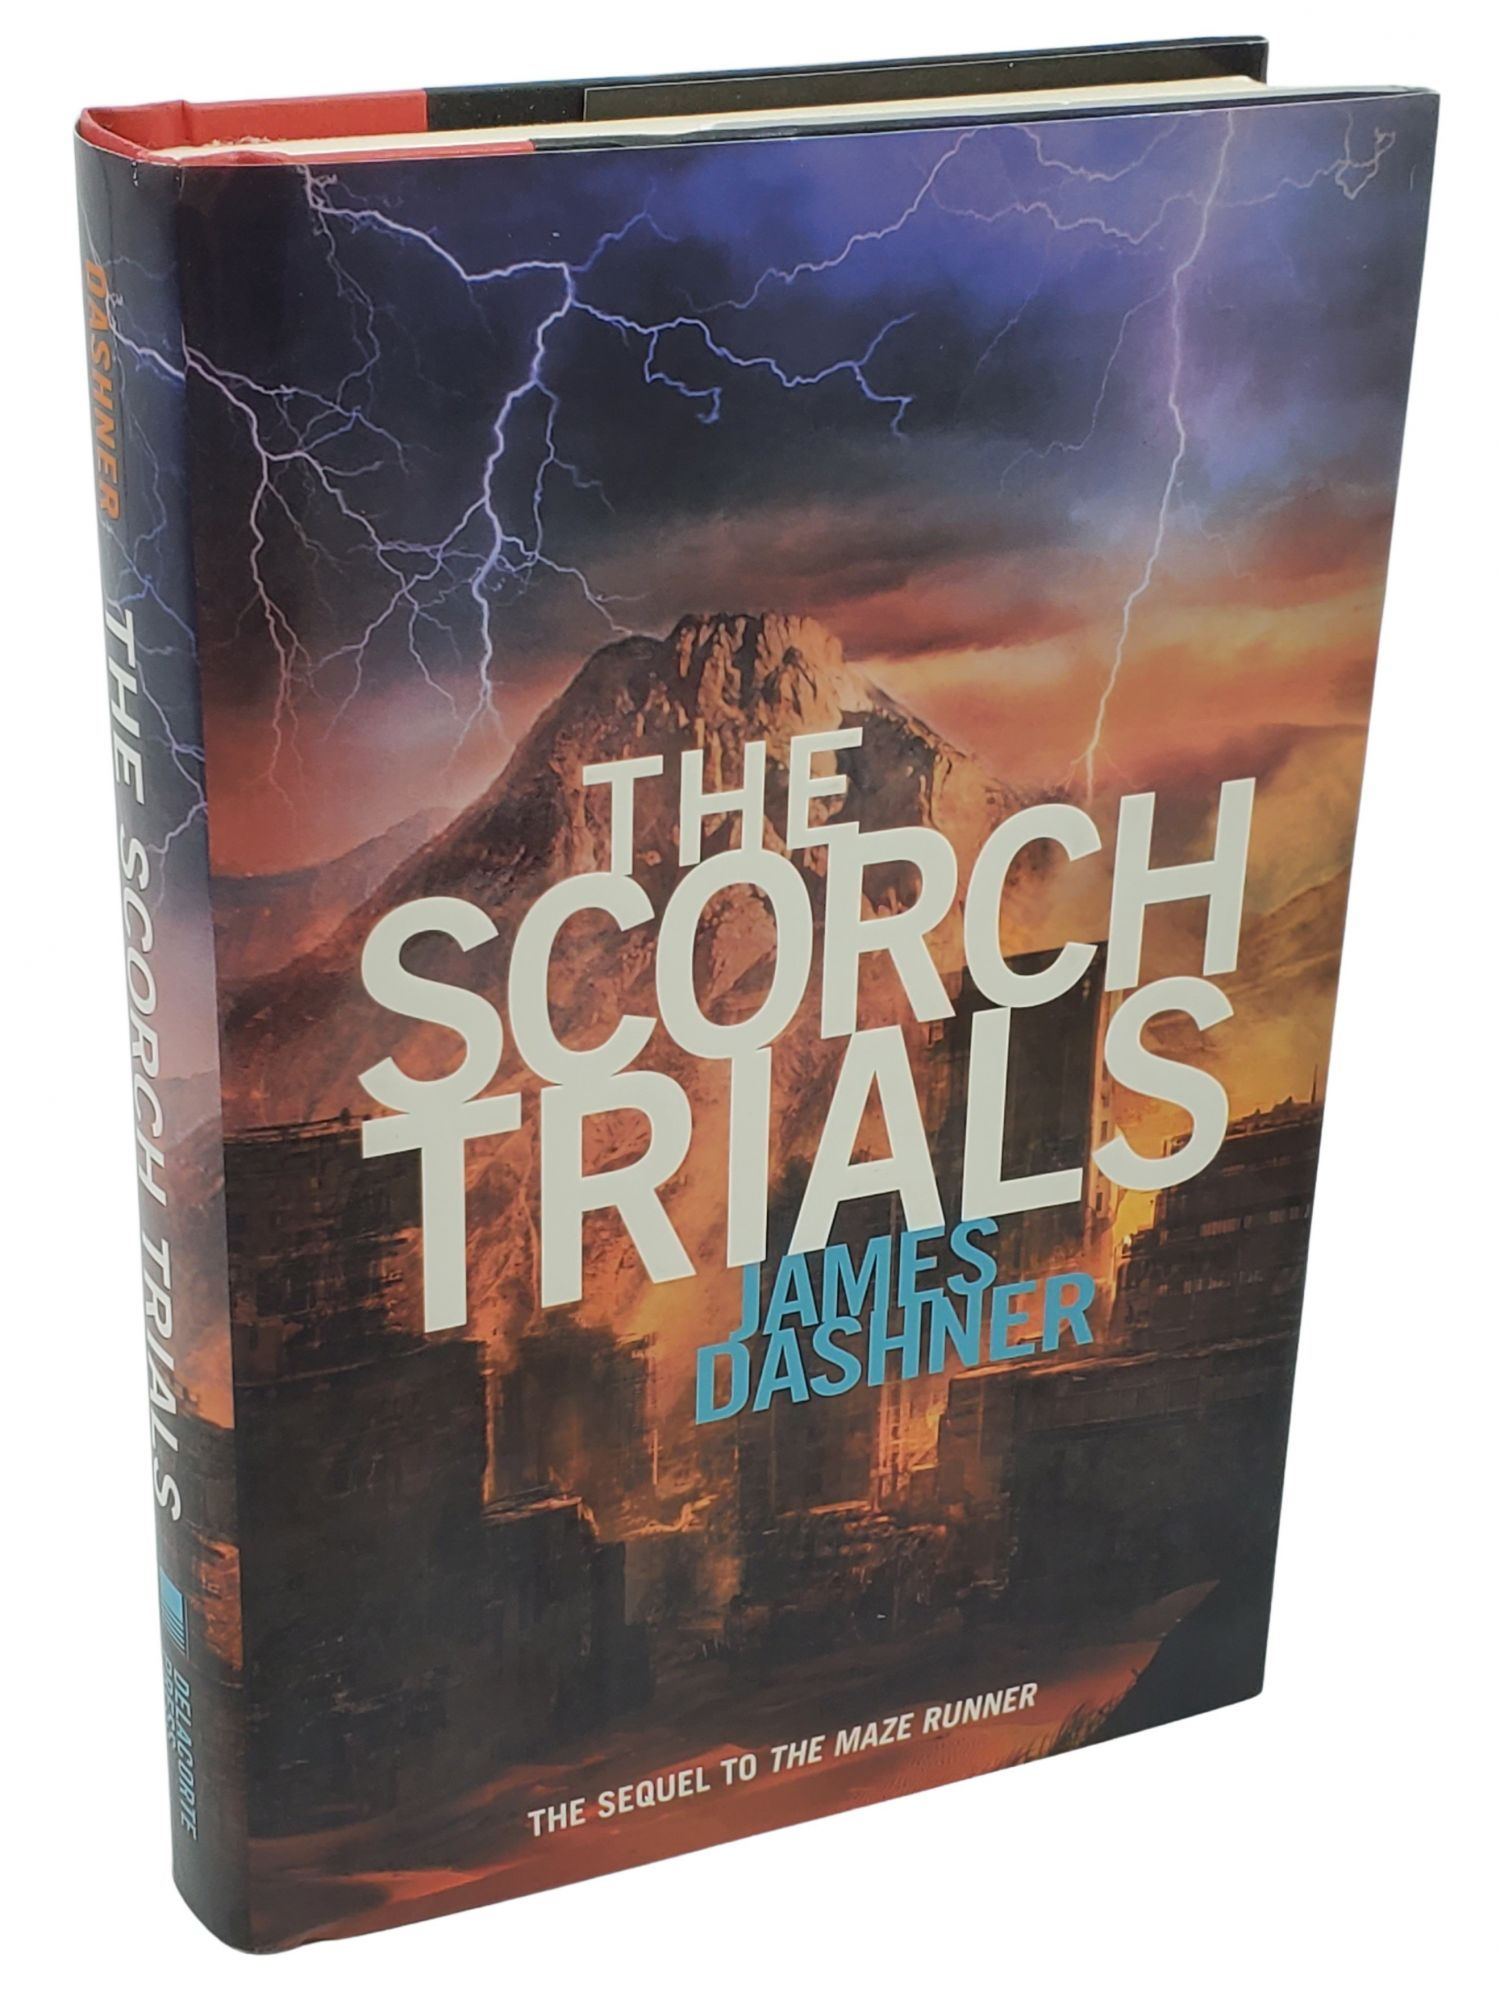 THE SCORCH TRIALS (MAZE RUNNER, BOOK 2). James Dashner.